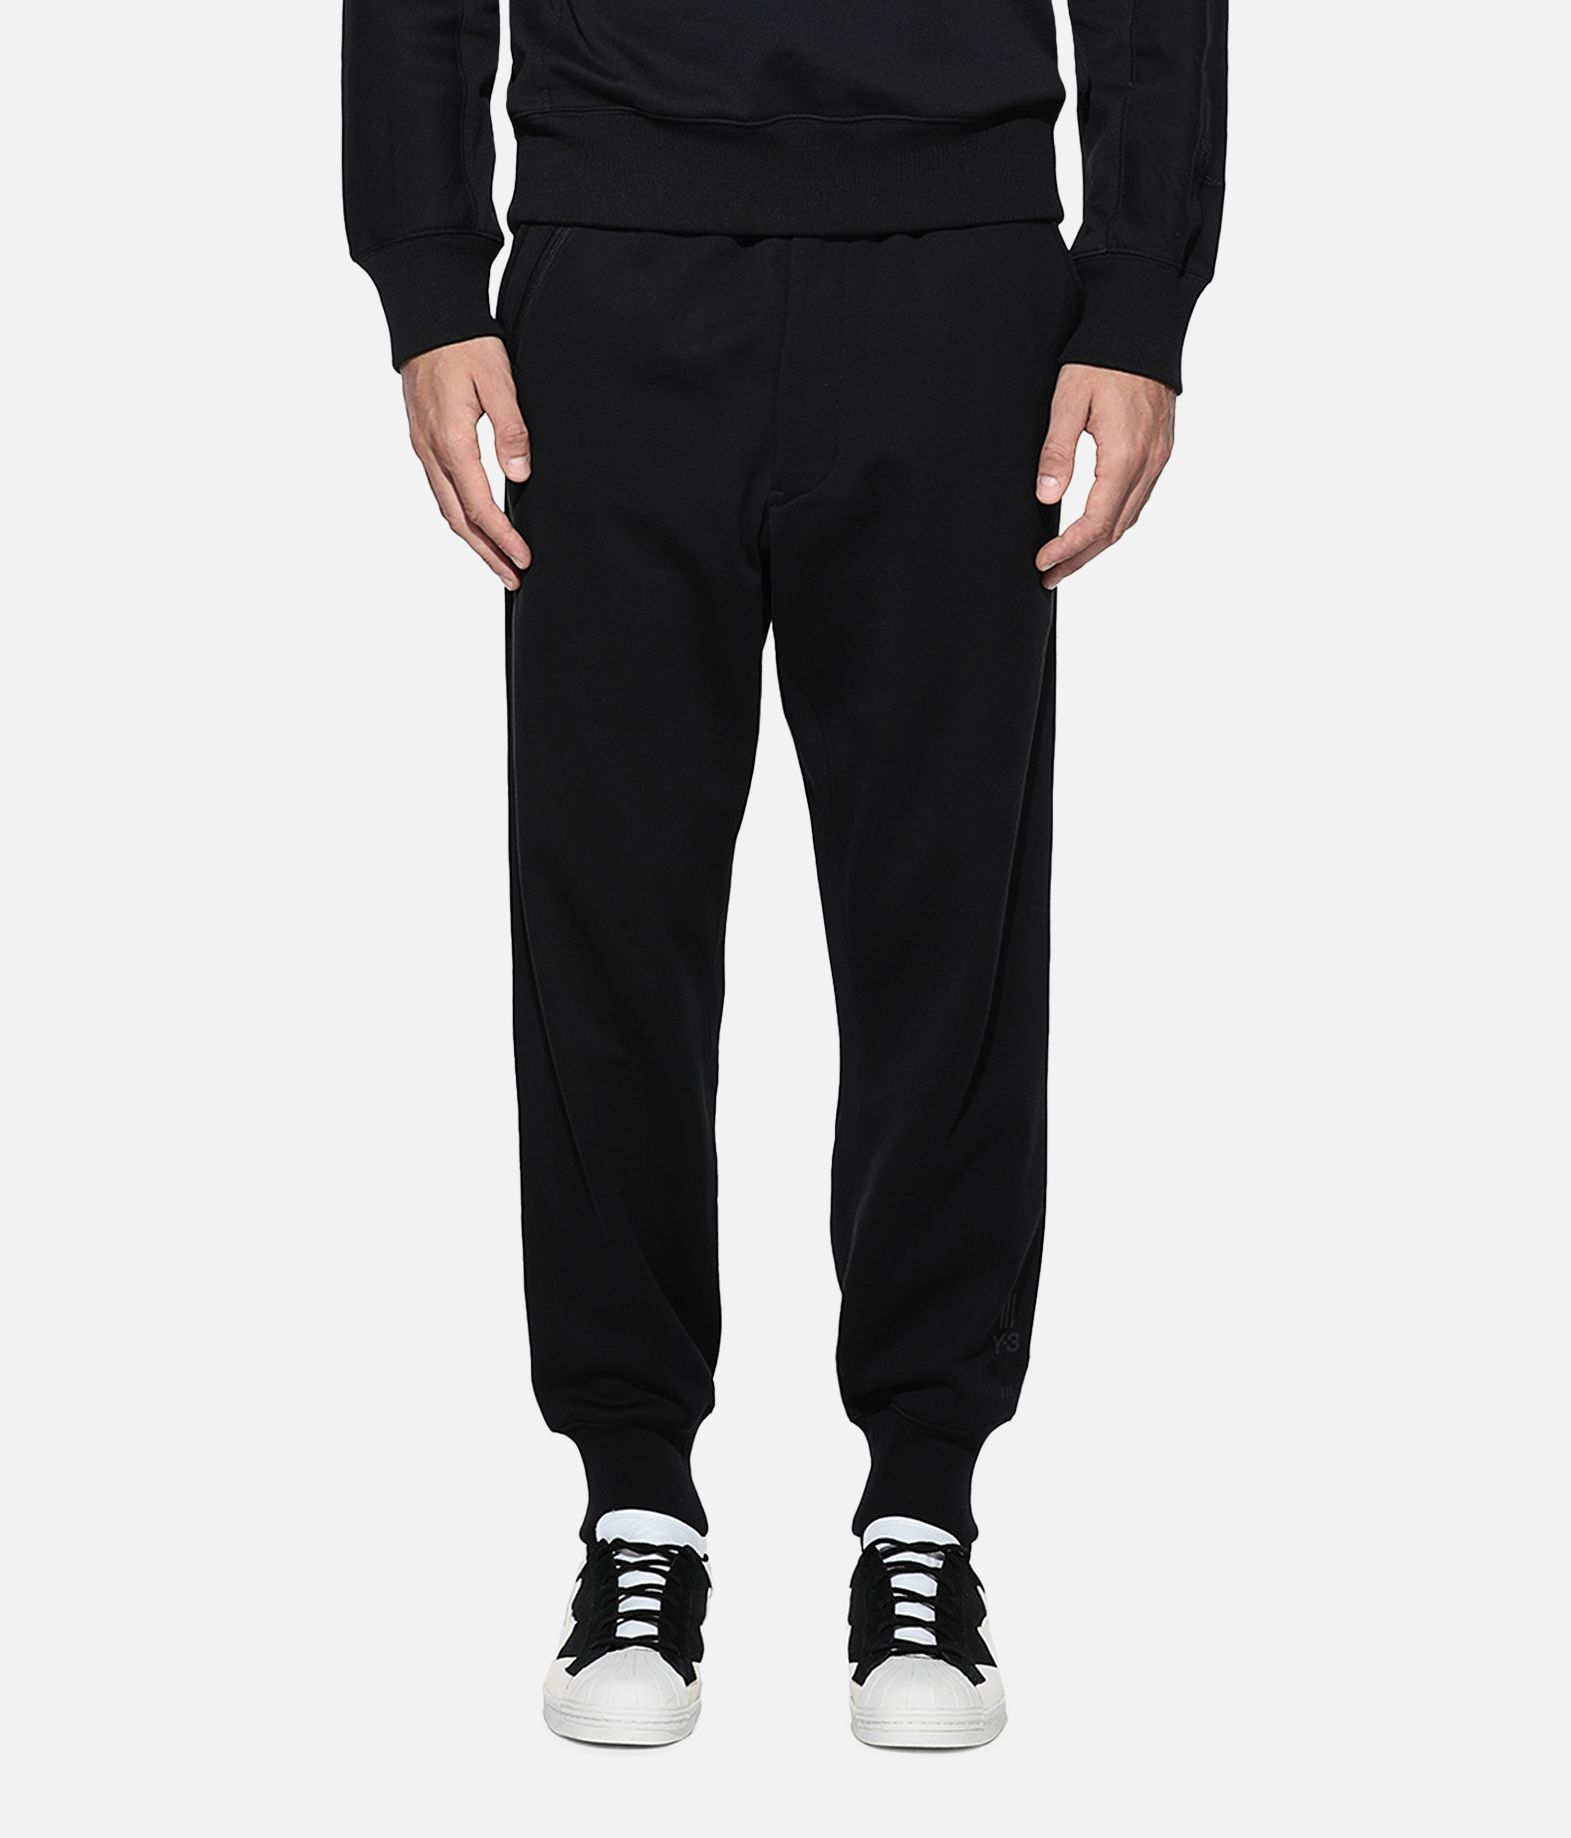 Y-3 Y-3 Classic Cuffed Pants Sweatpants Man r